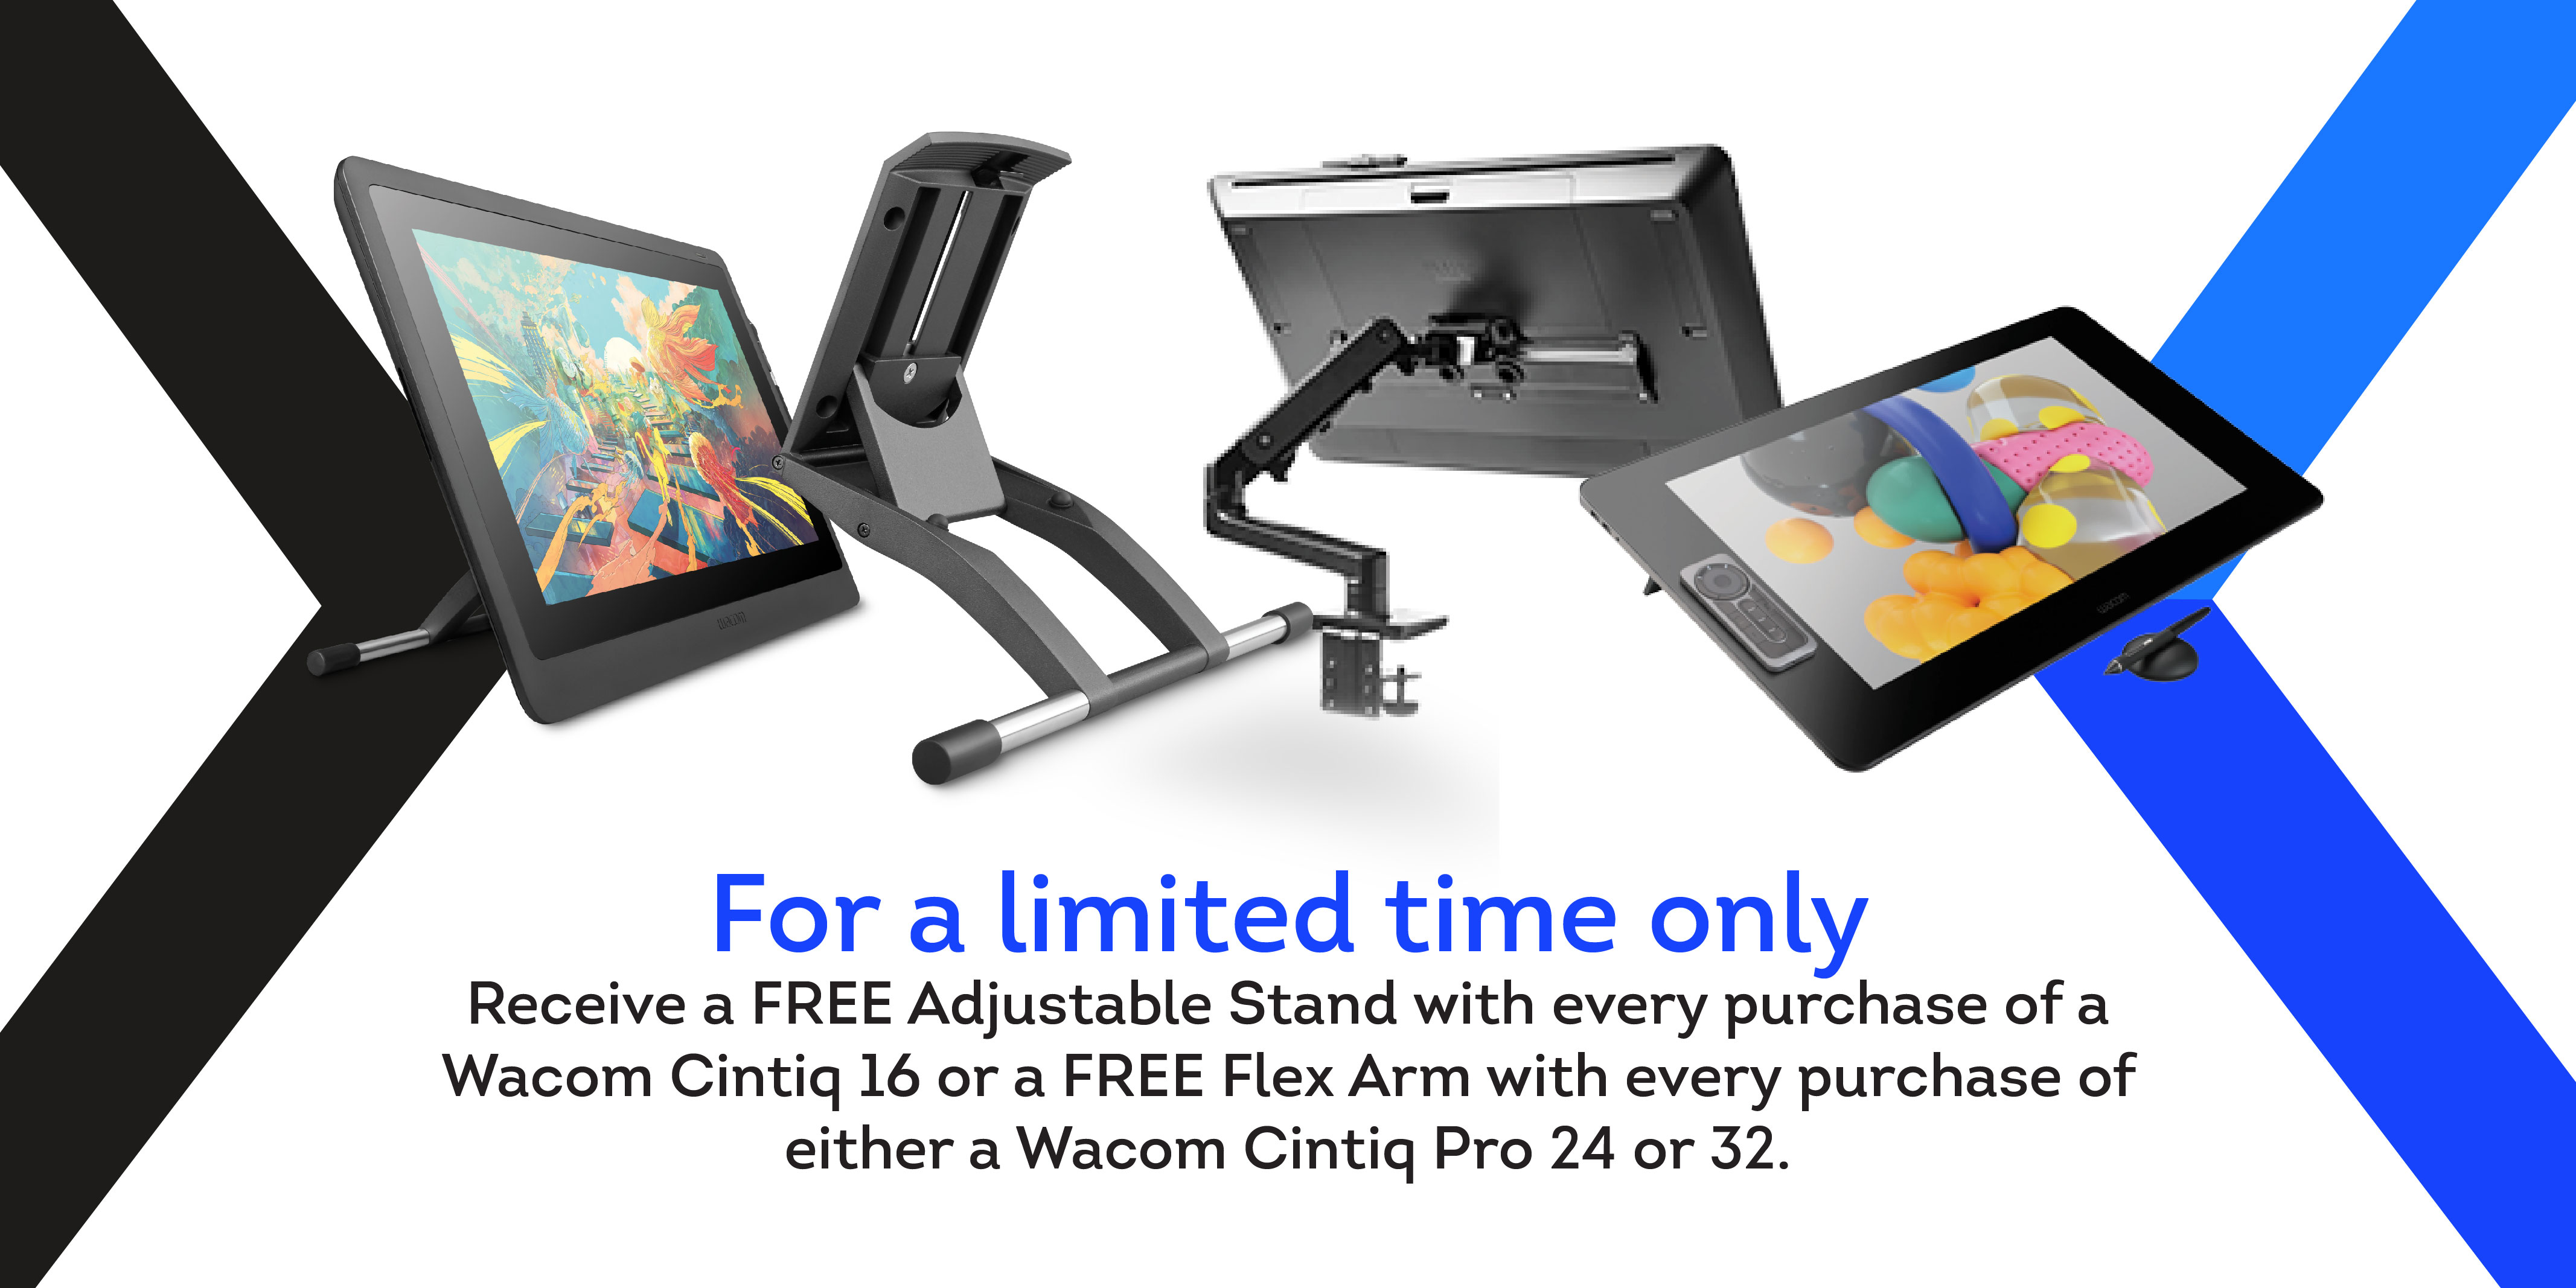 Wacom Cintiq and Cintiq Pro Offers!